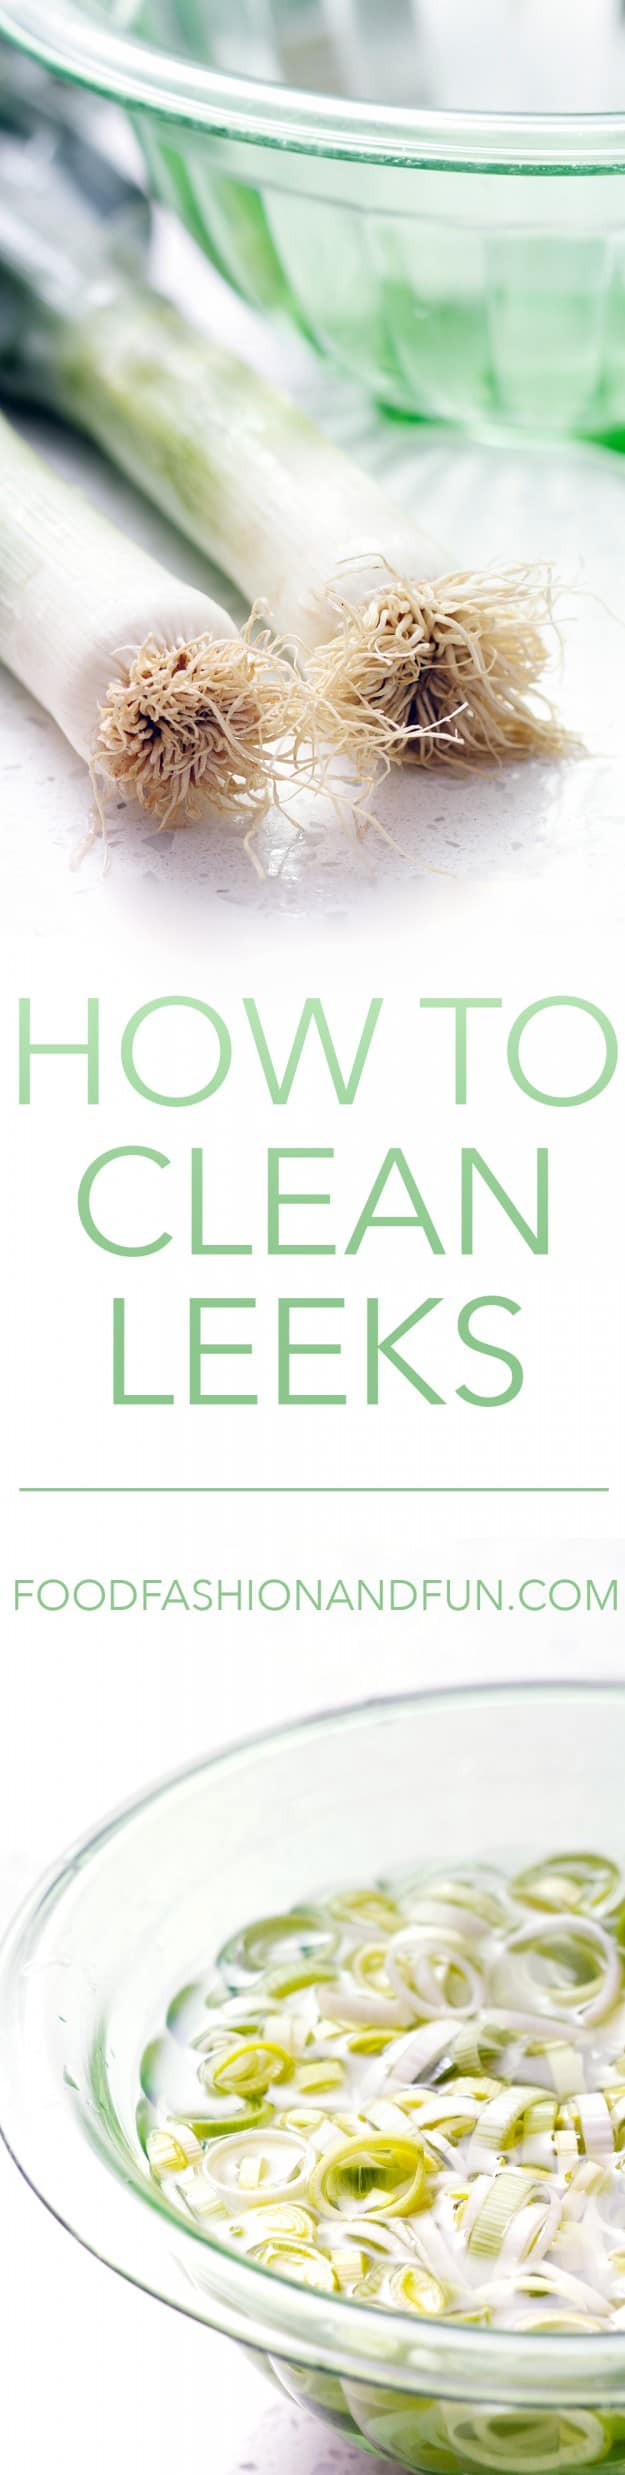 How to clean leeks